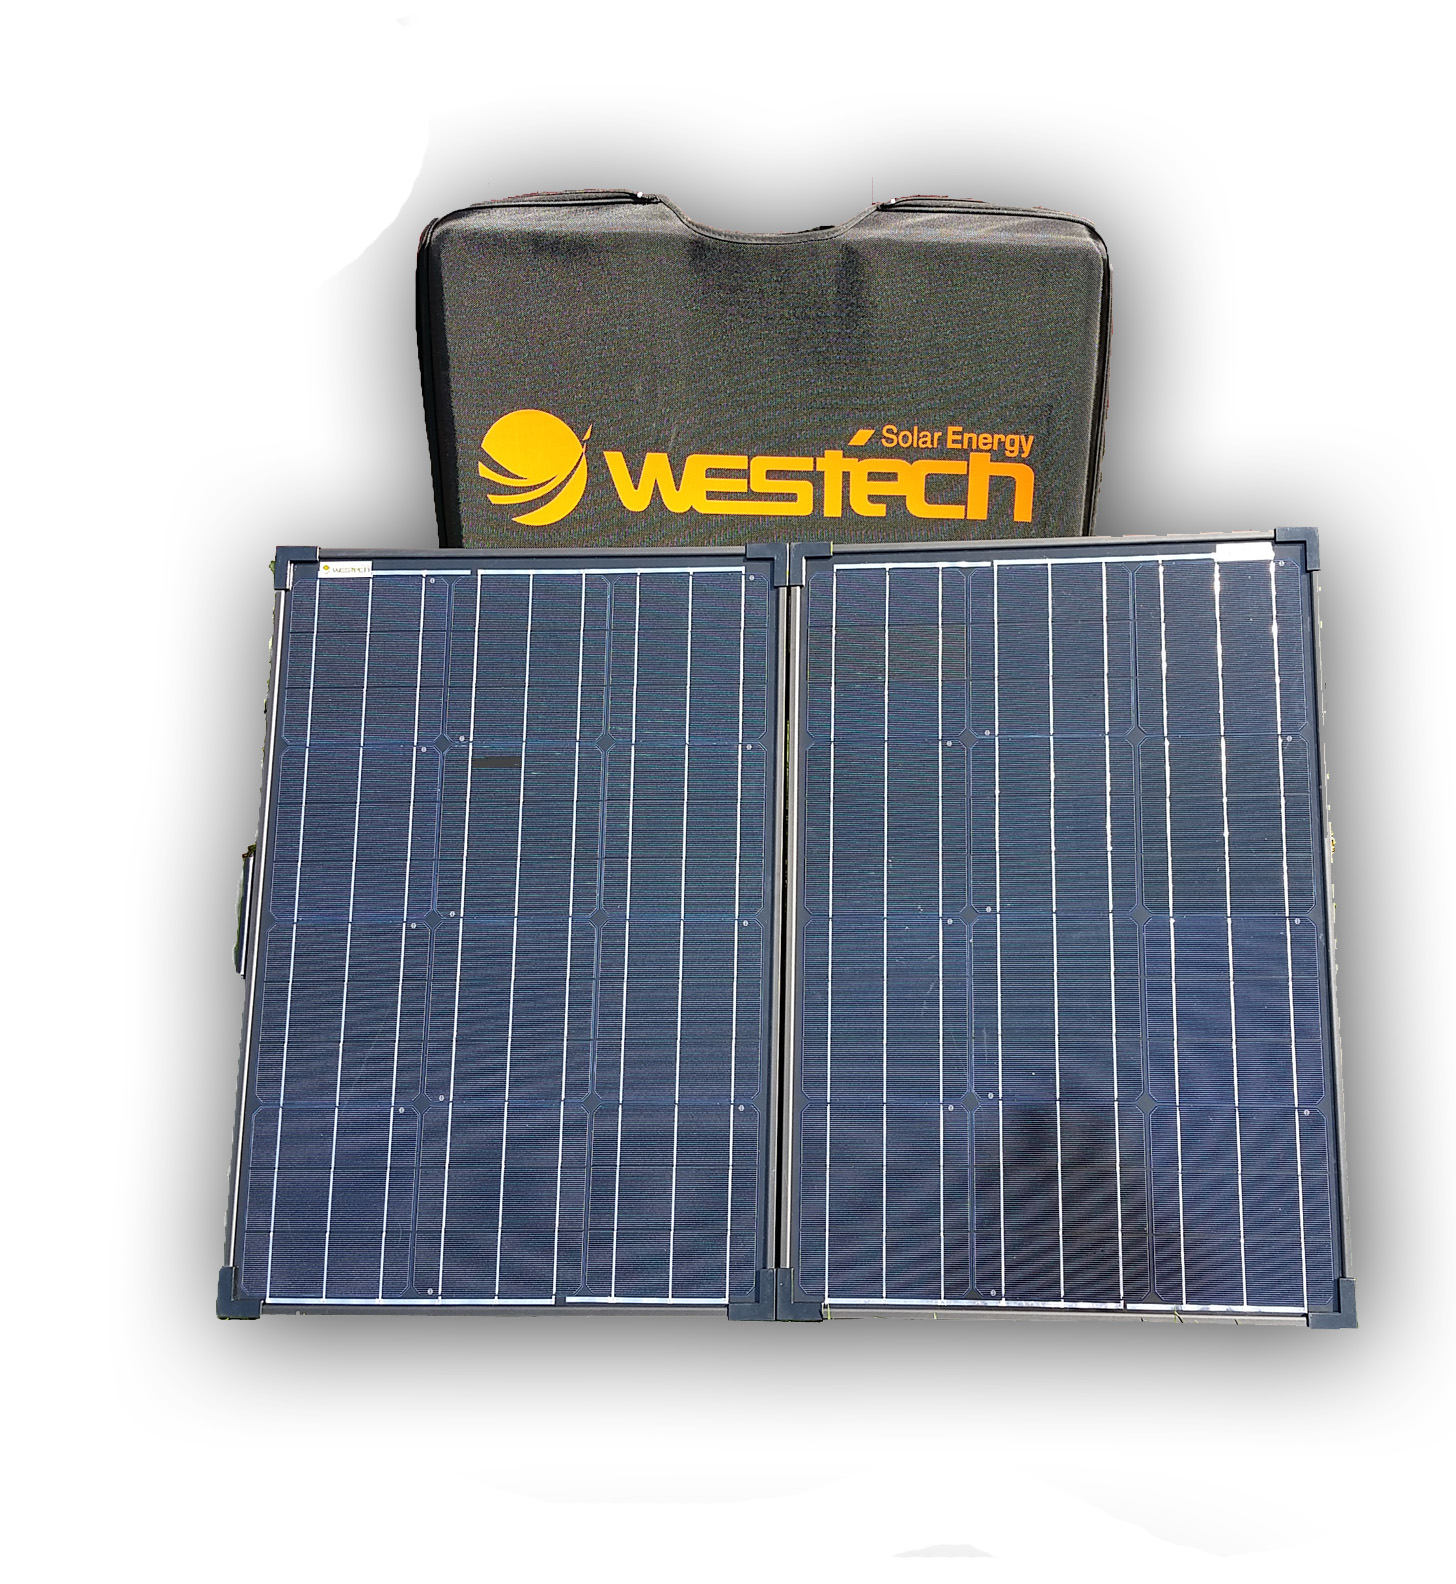 Valiza Solara Camping KrafTech 100w - Alternative Pure Energy